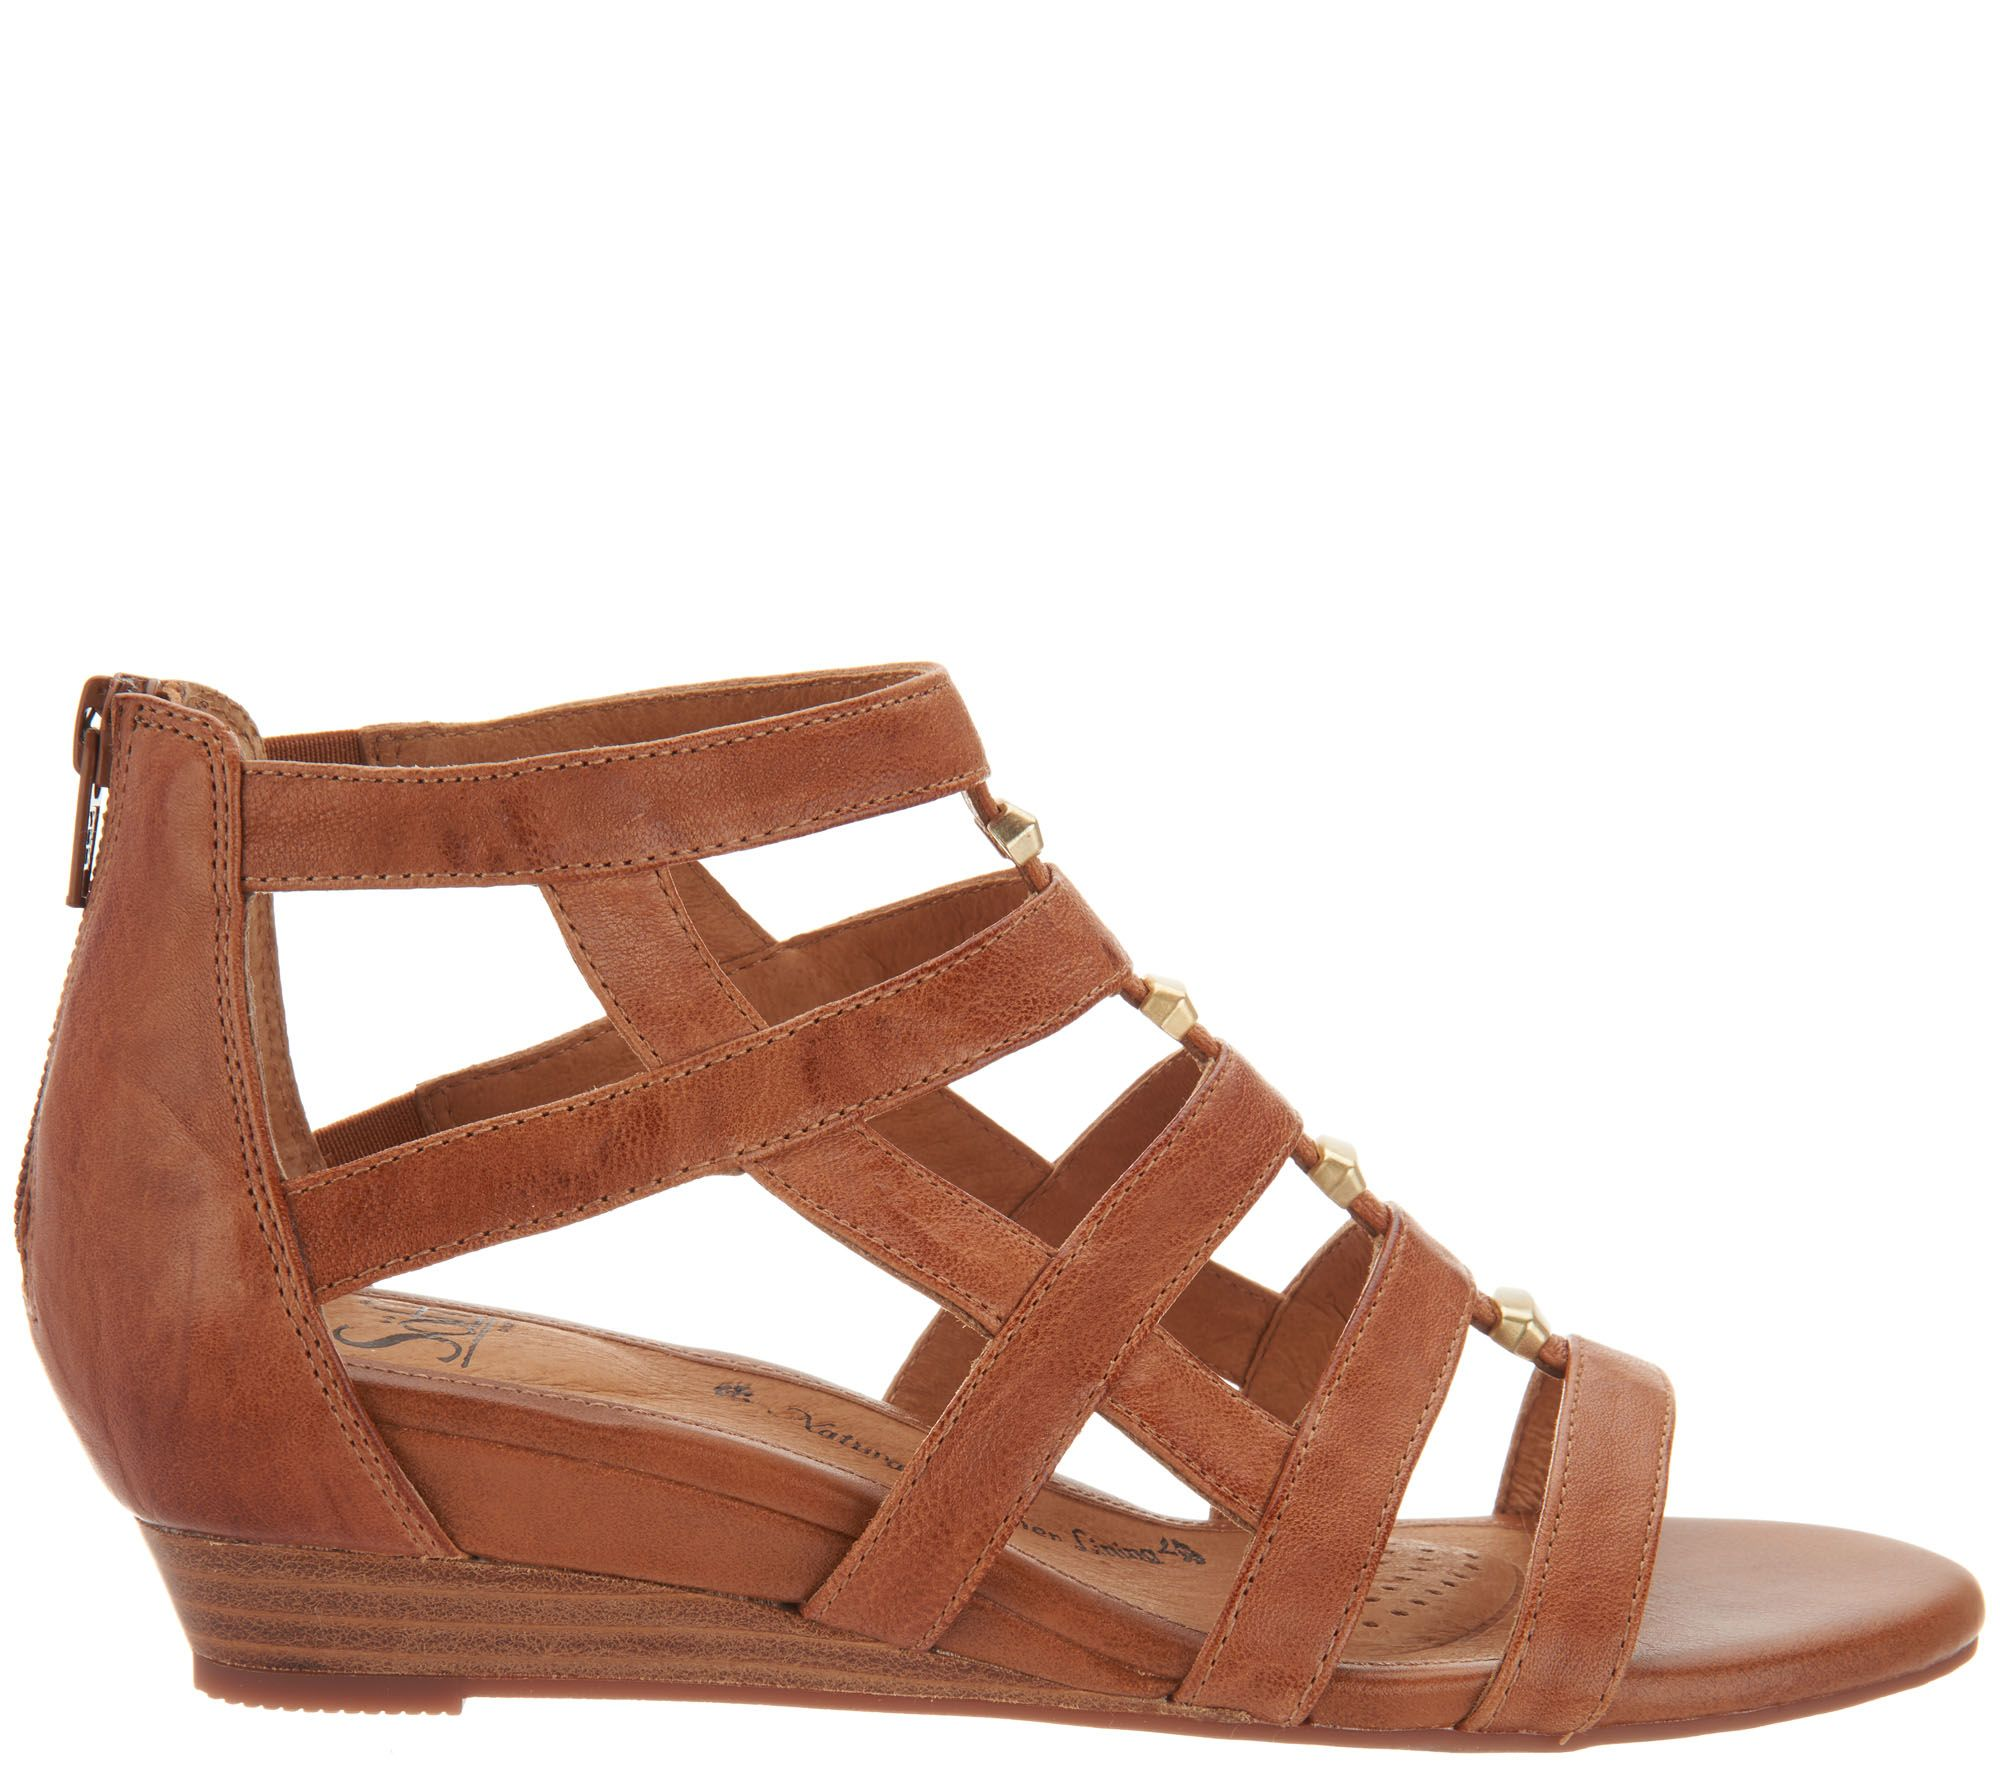 083454881b62 Sofft Leather Gladiator Sandals - Rio - Page 1 — QVC.com